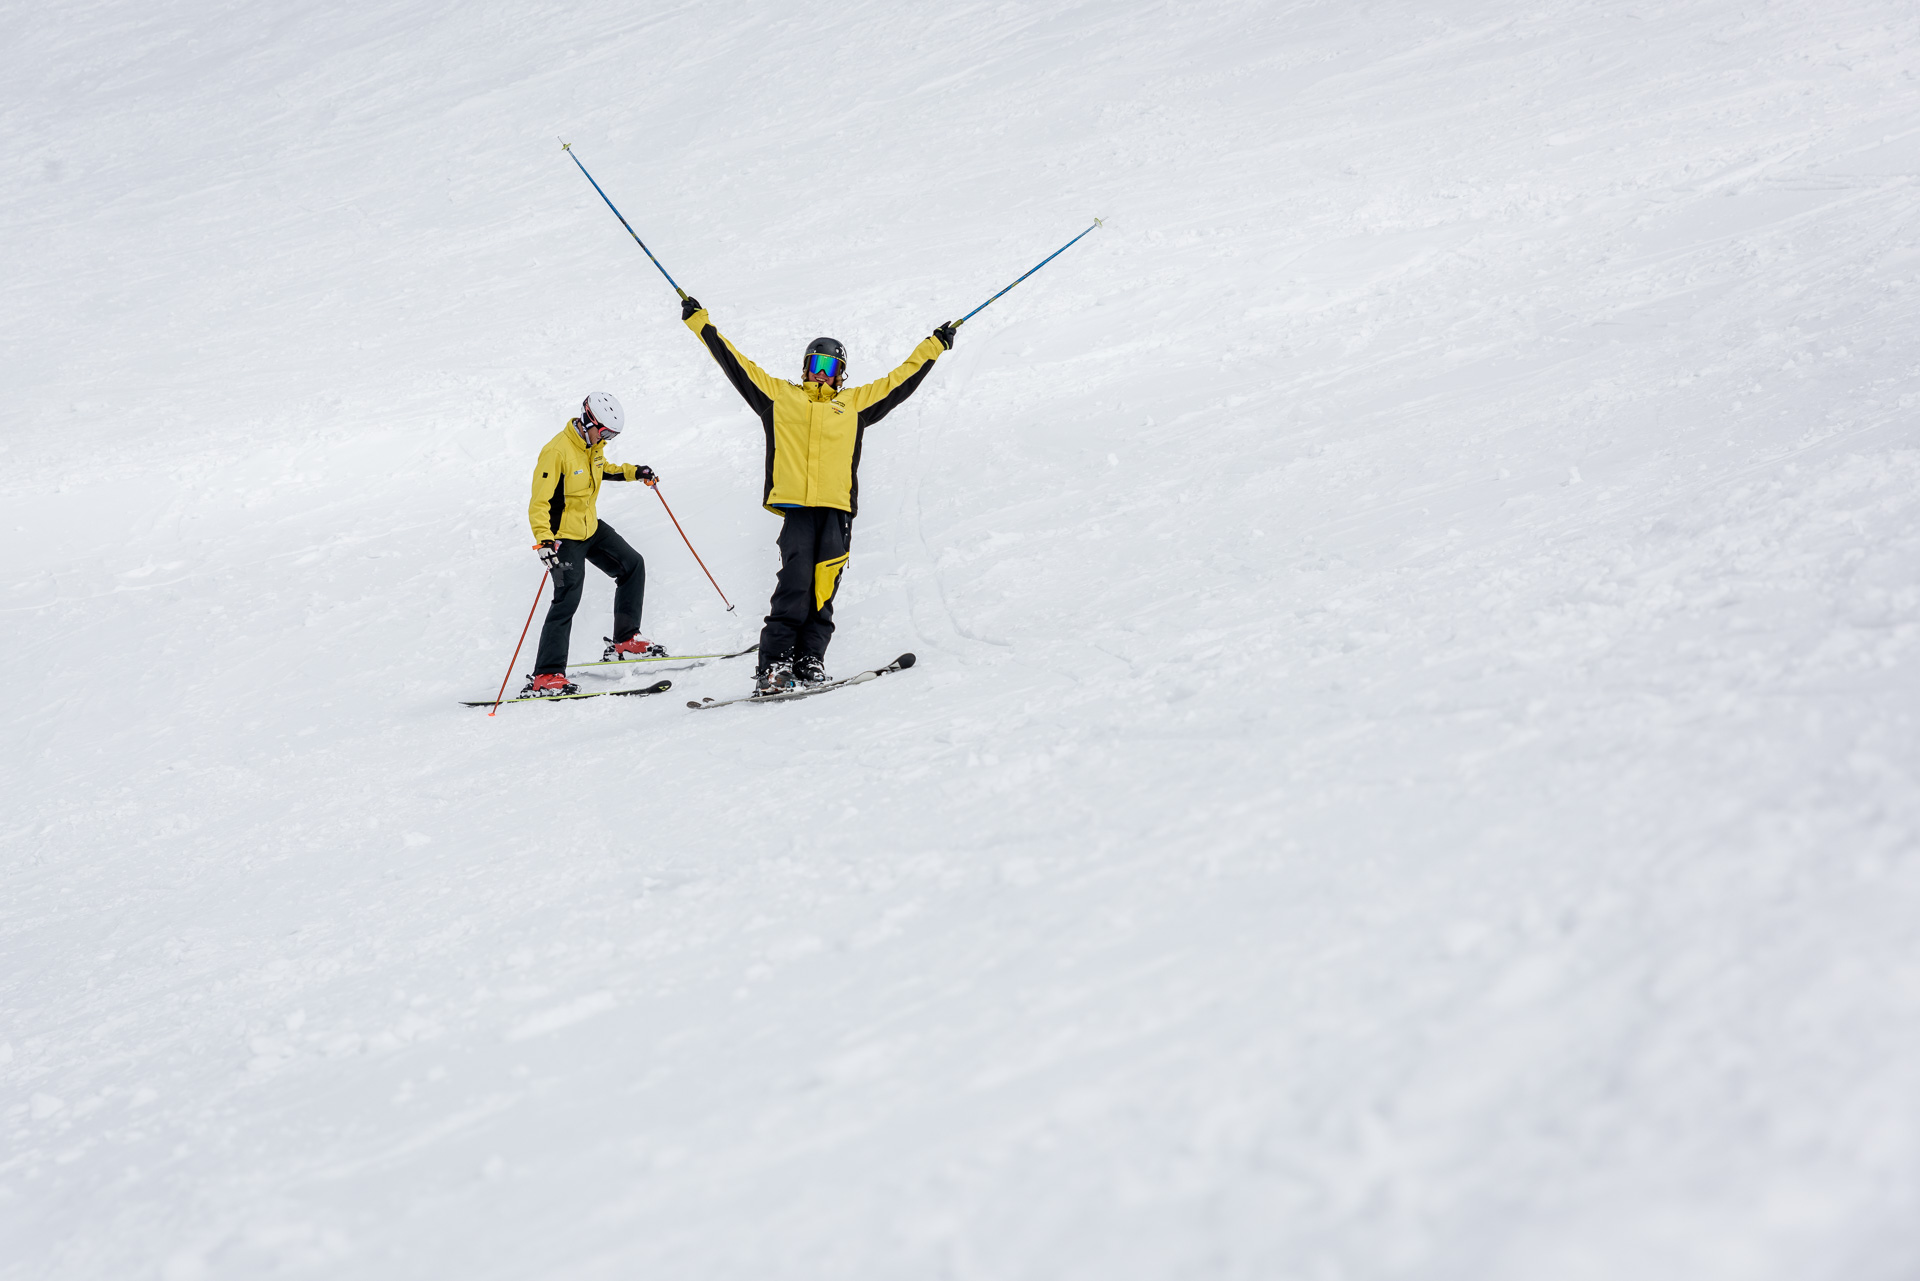 All in One Ski - Erwachsen/Adult, 3 Tage/Days Kurs/Course & 7 Tage/Days Rent